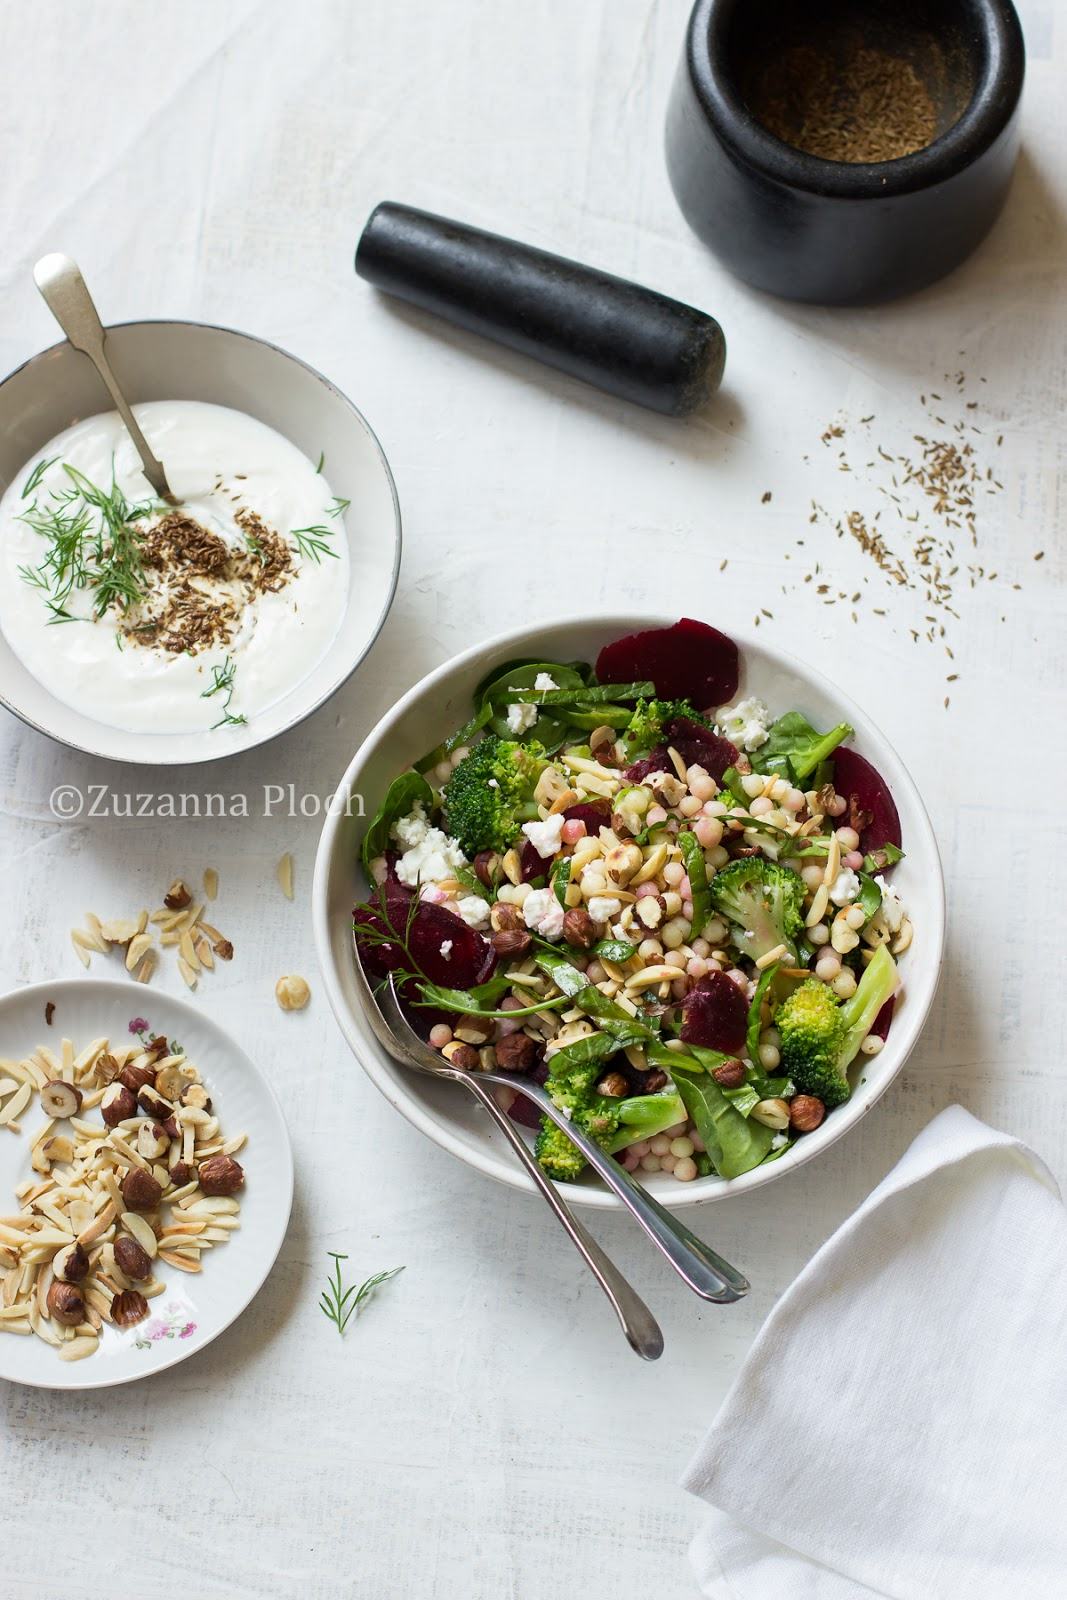 israeli couscous salad - Food Photography by Zuzanna Ploch, fotografia kulinarna